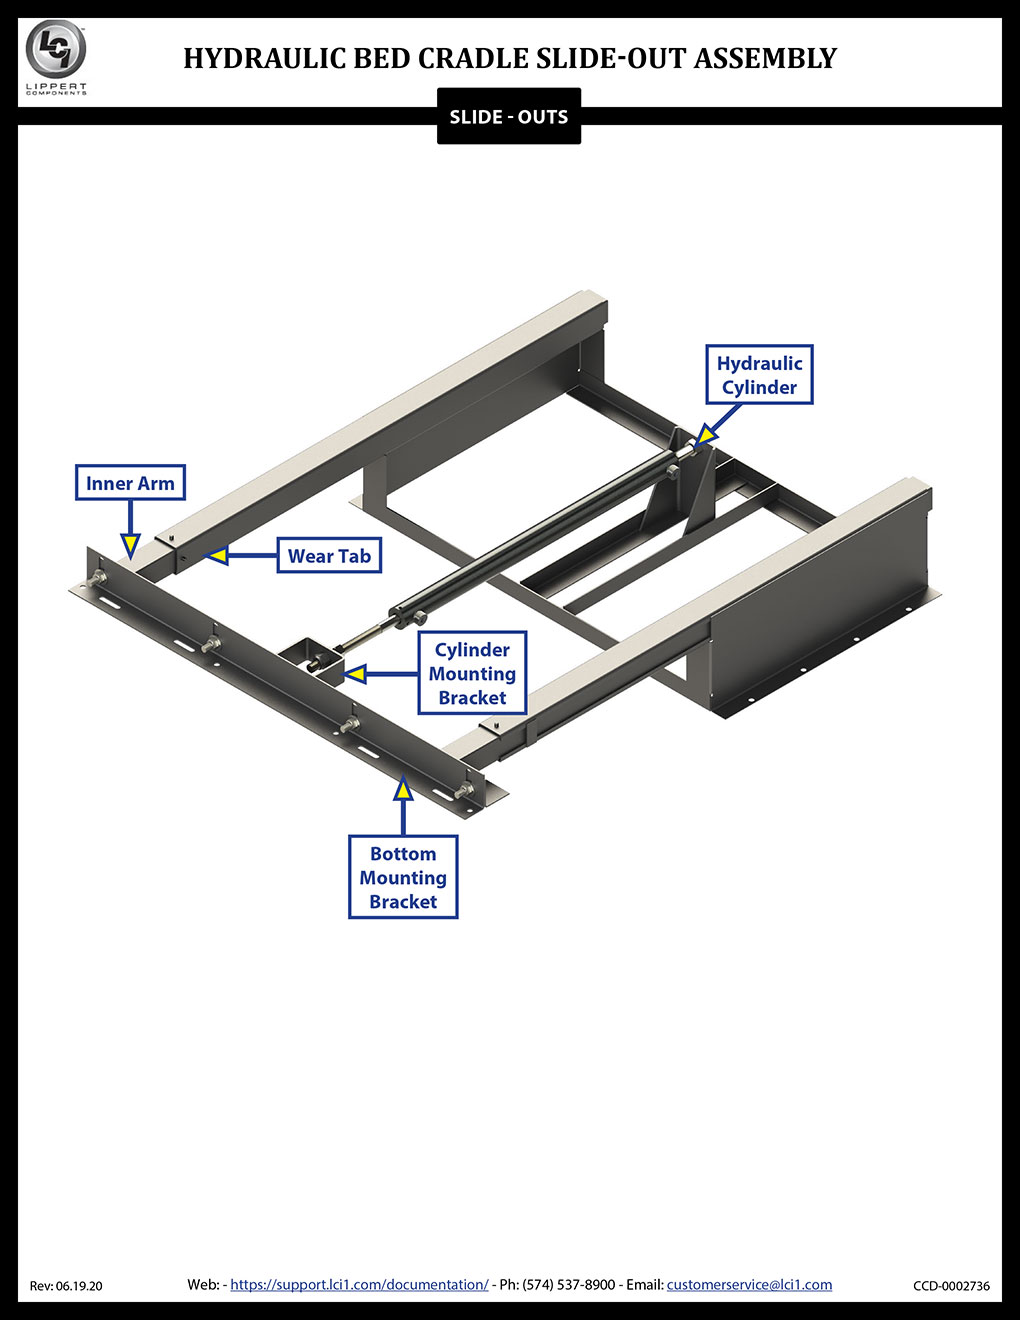 Hydraulic Bed Cradle Assembly